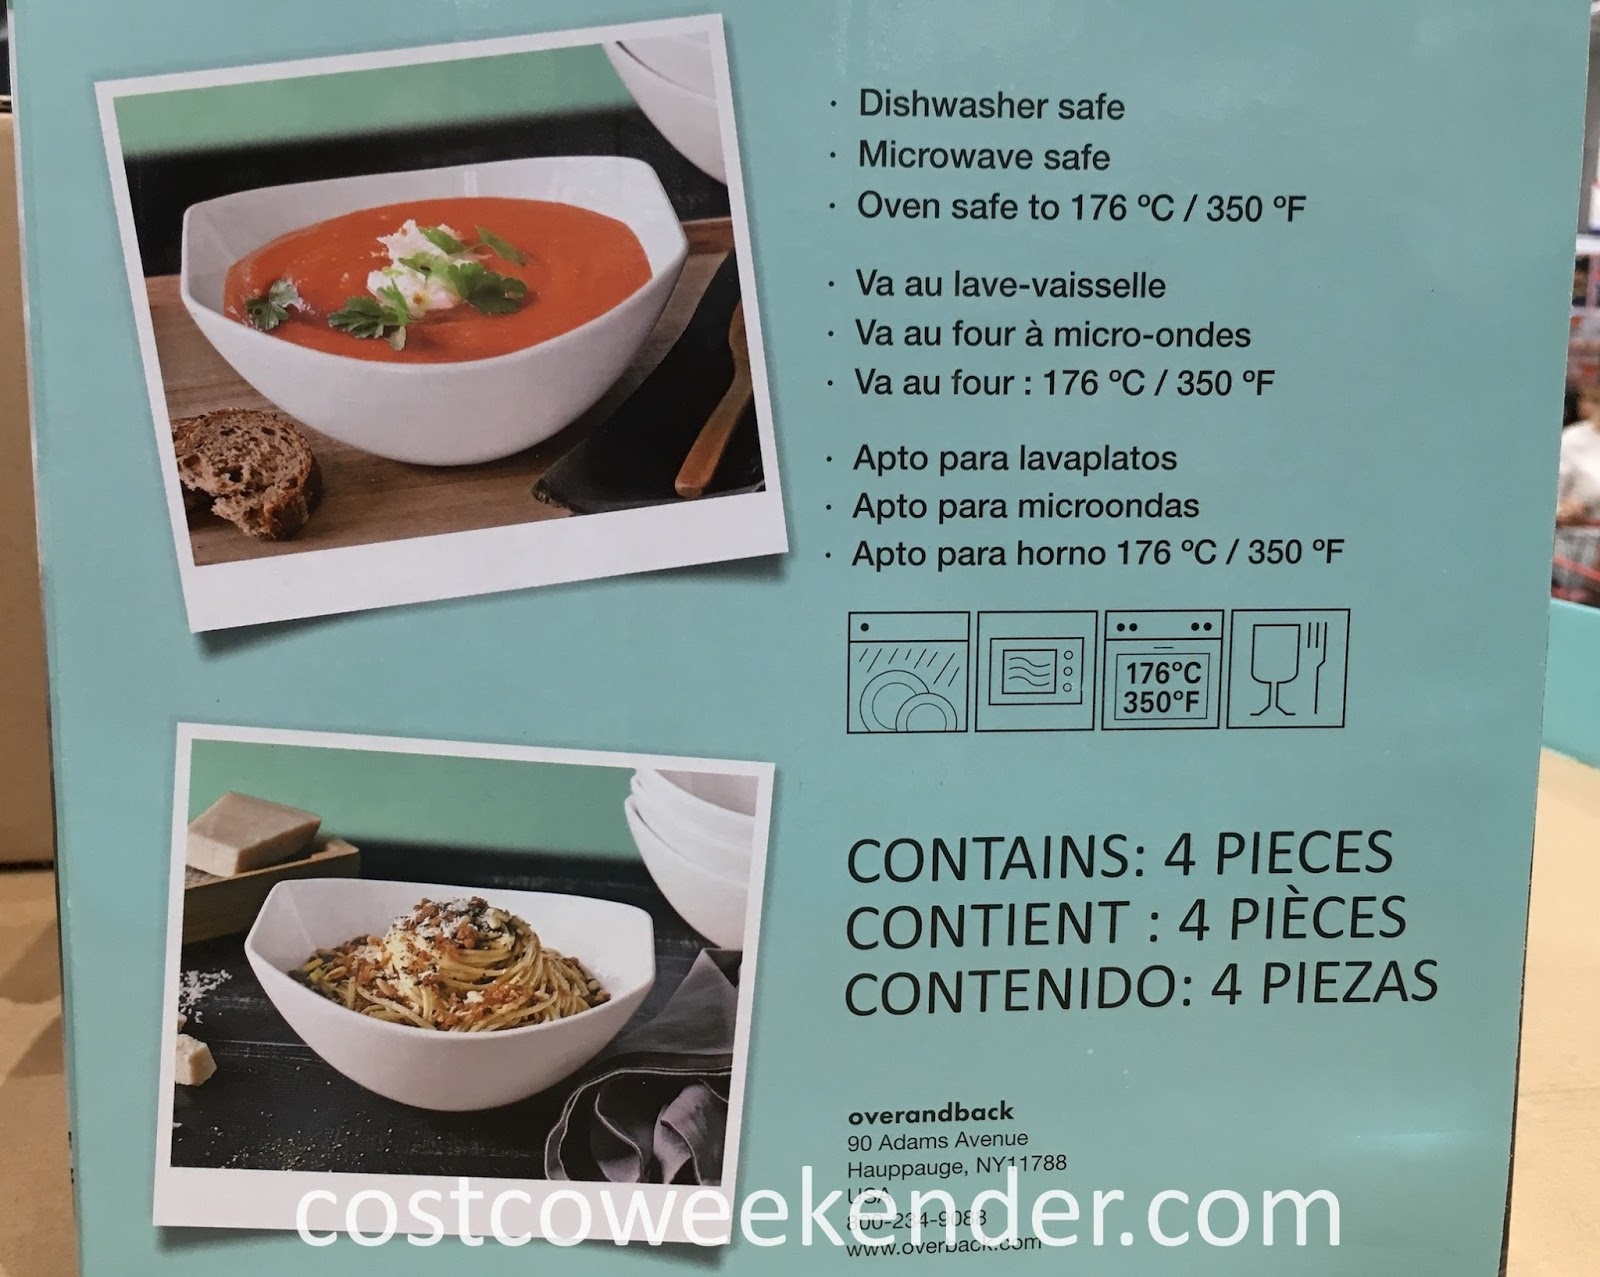 Costco 1040003 - overandback Porcelain Serving Bowls: practical and elegant